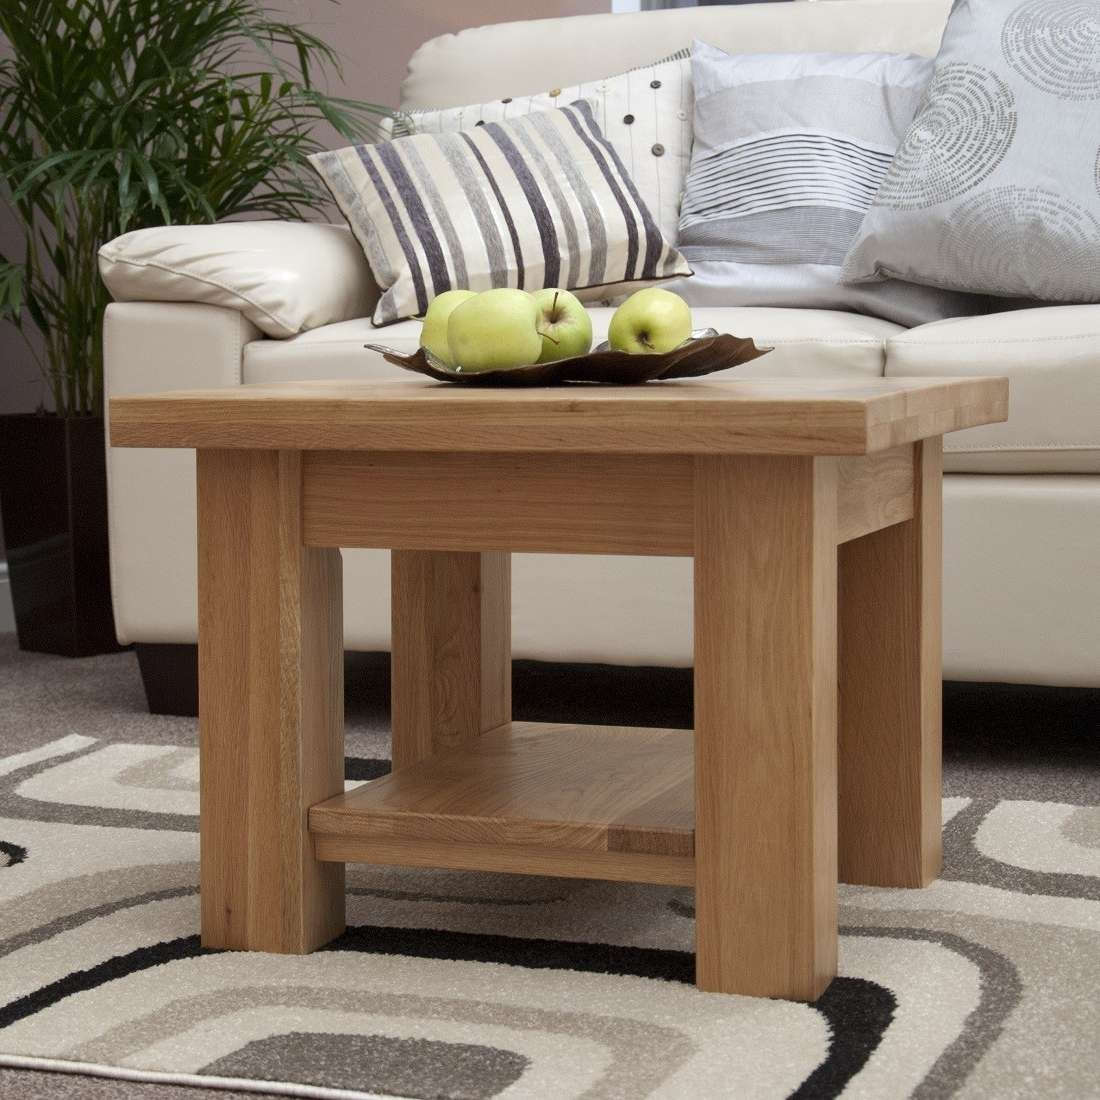 Oak Furniture Uk Throughout Well Known Square Oak Coffee Tables (View 14 of 20)